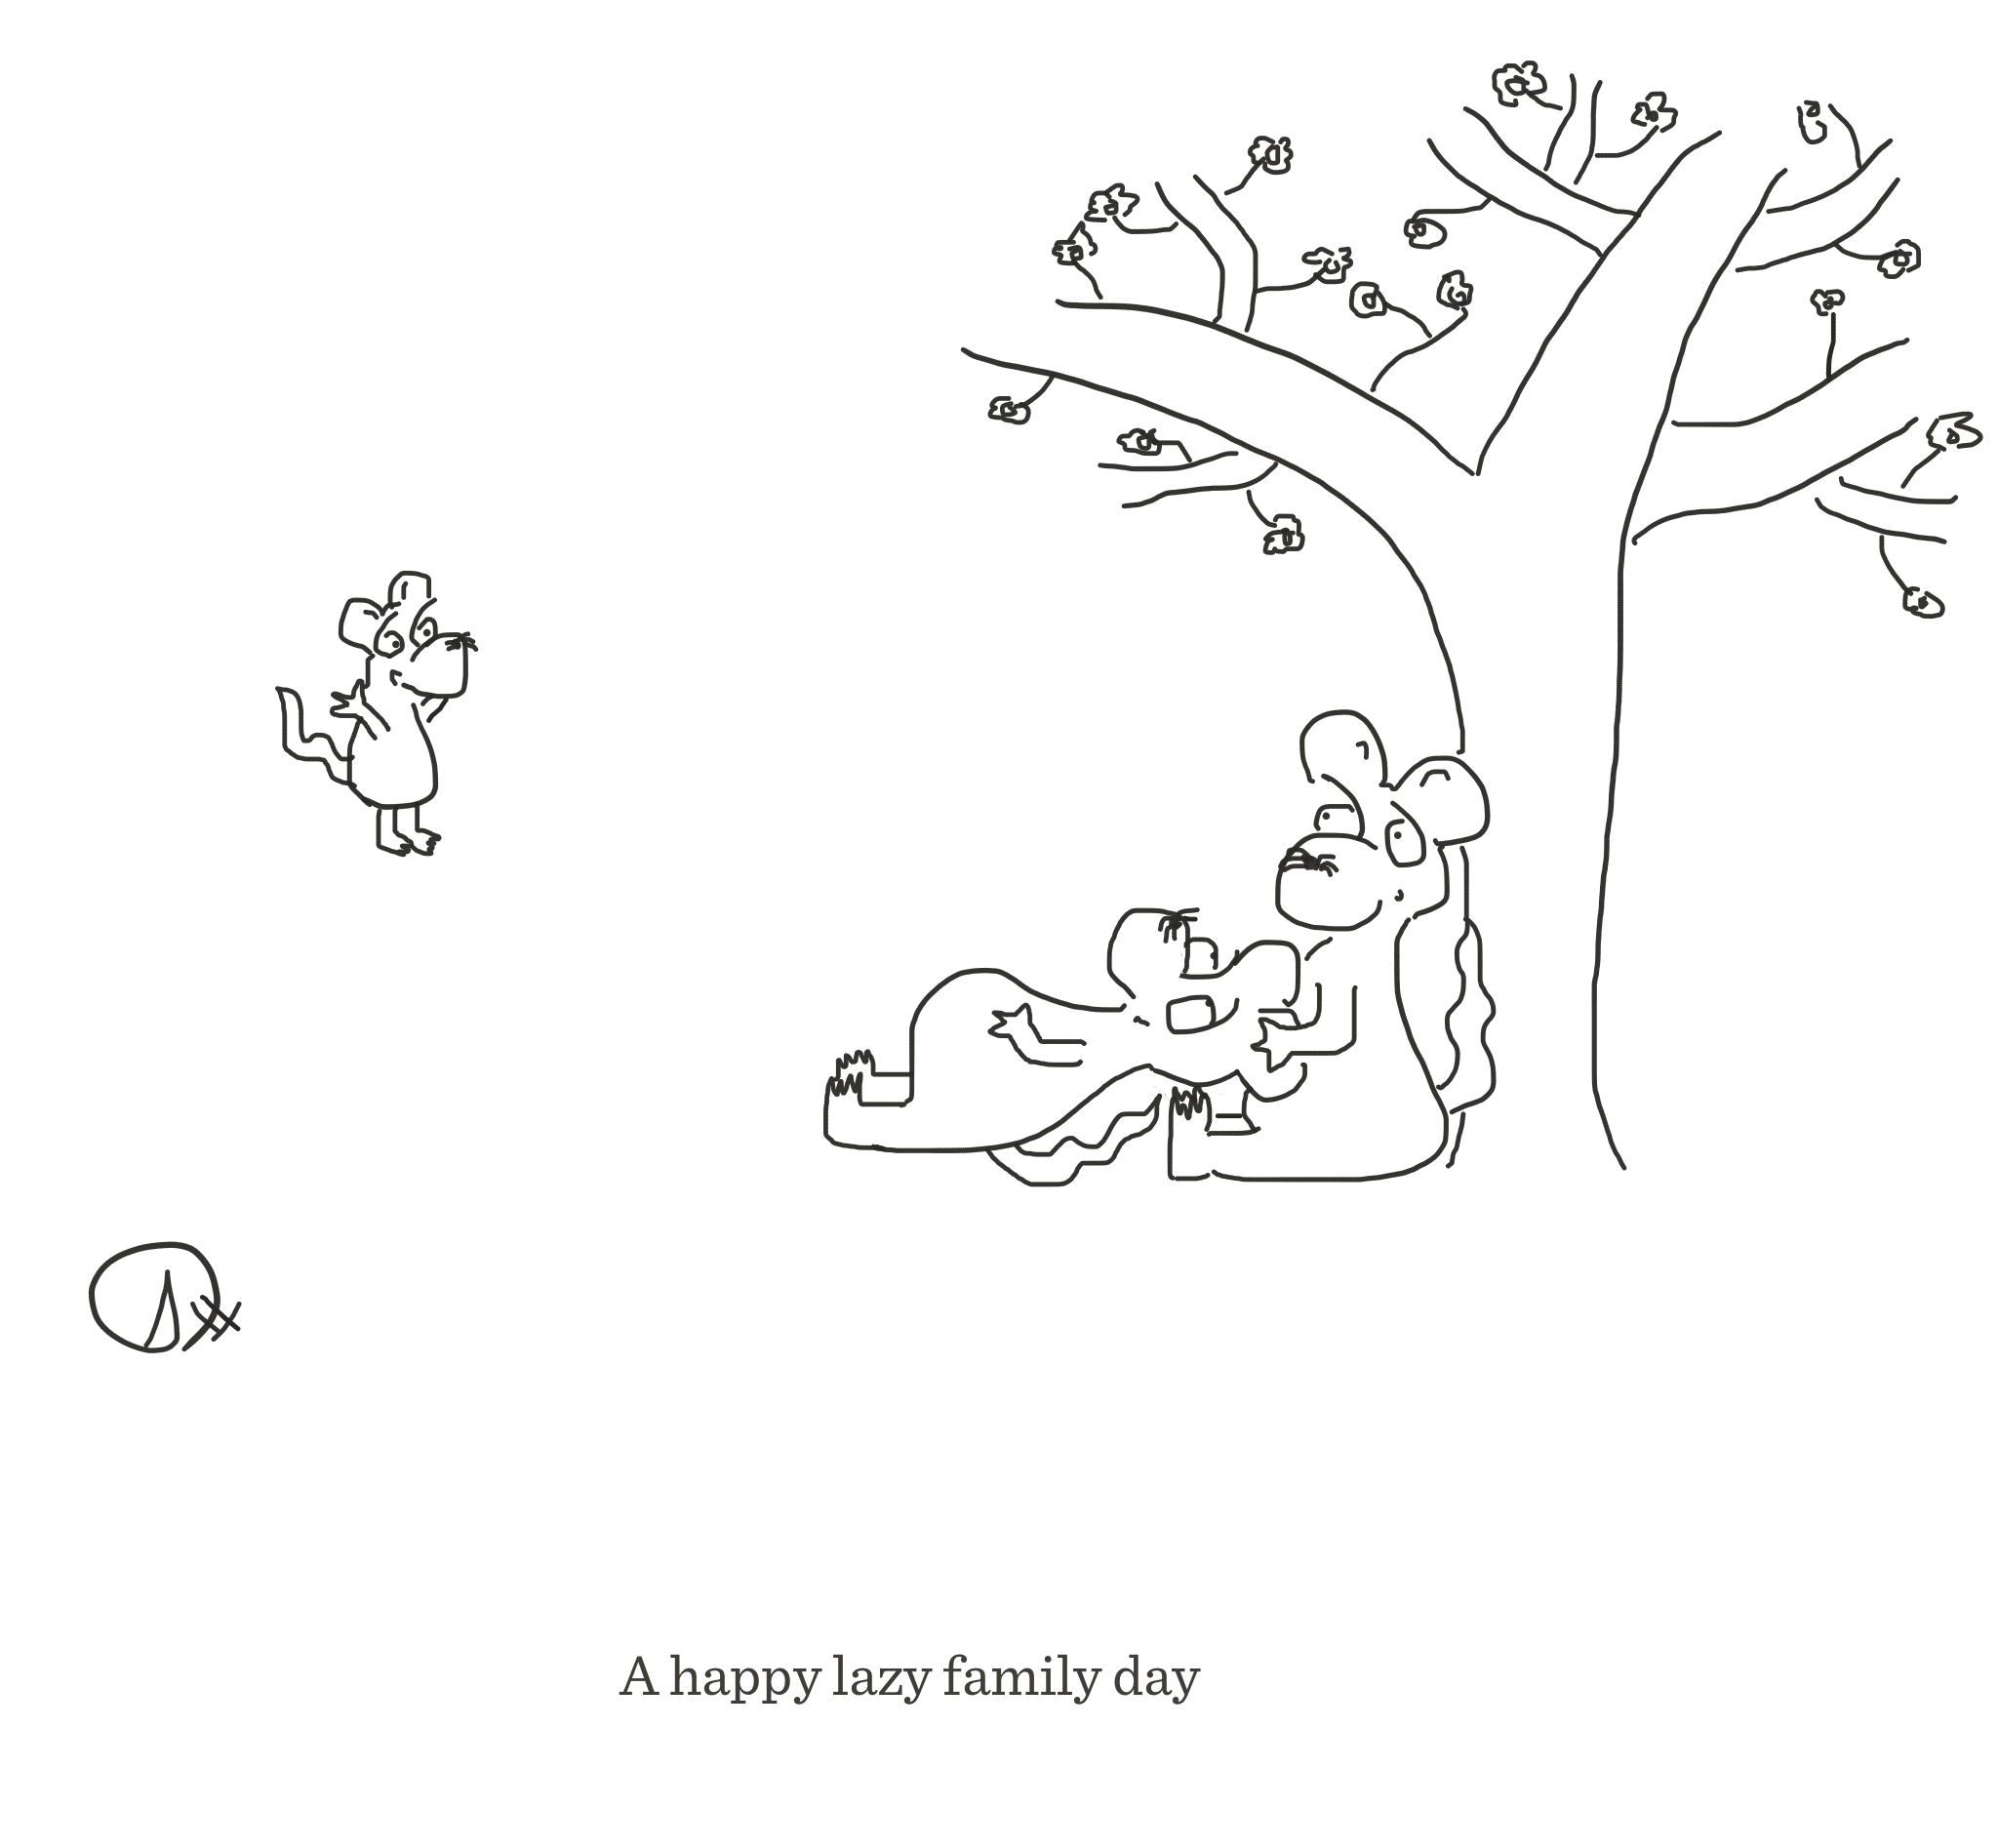 Lazy family day, The Happy Rat, Sarah Hunt